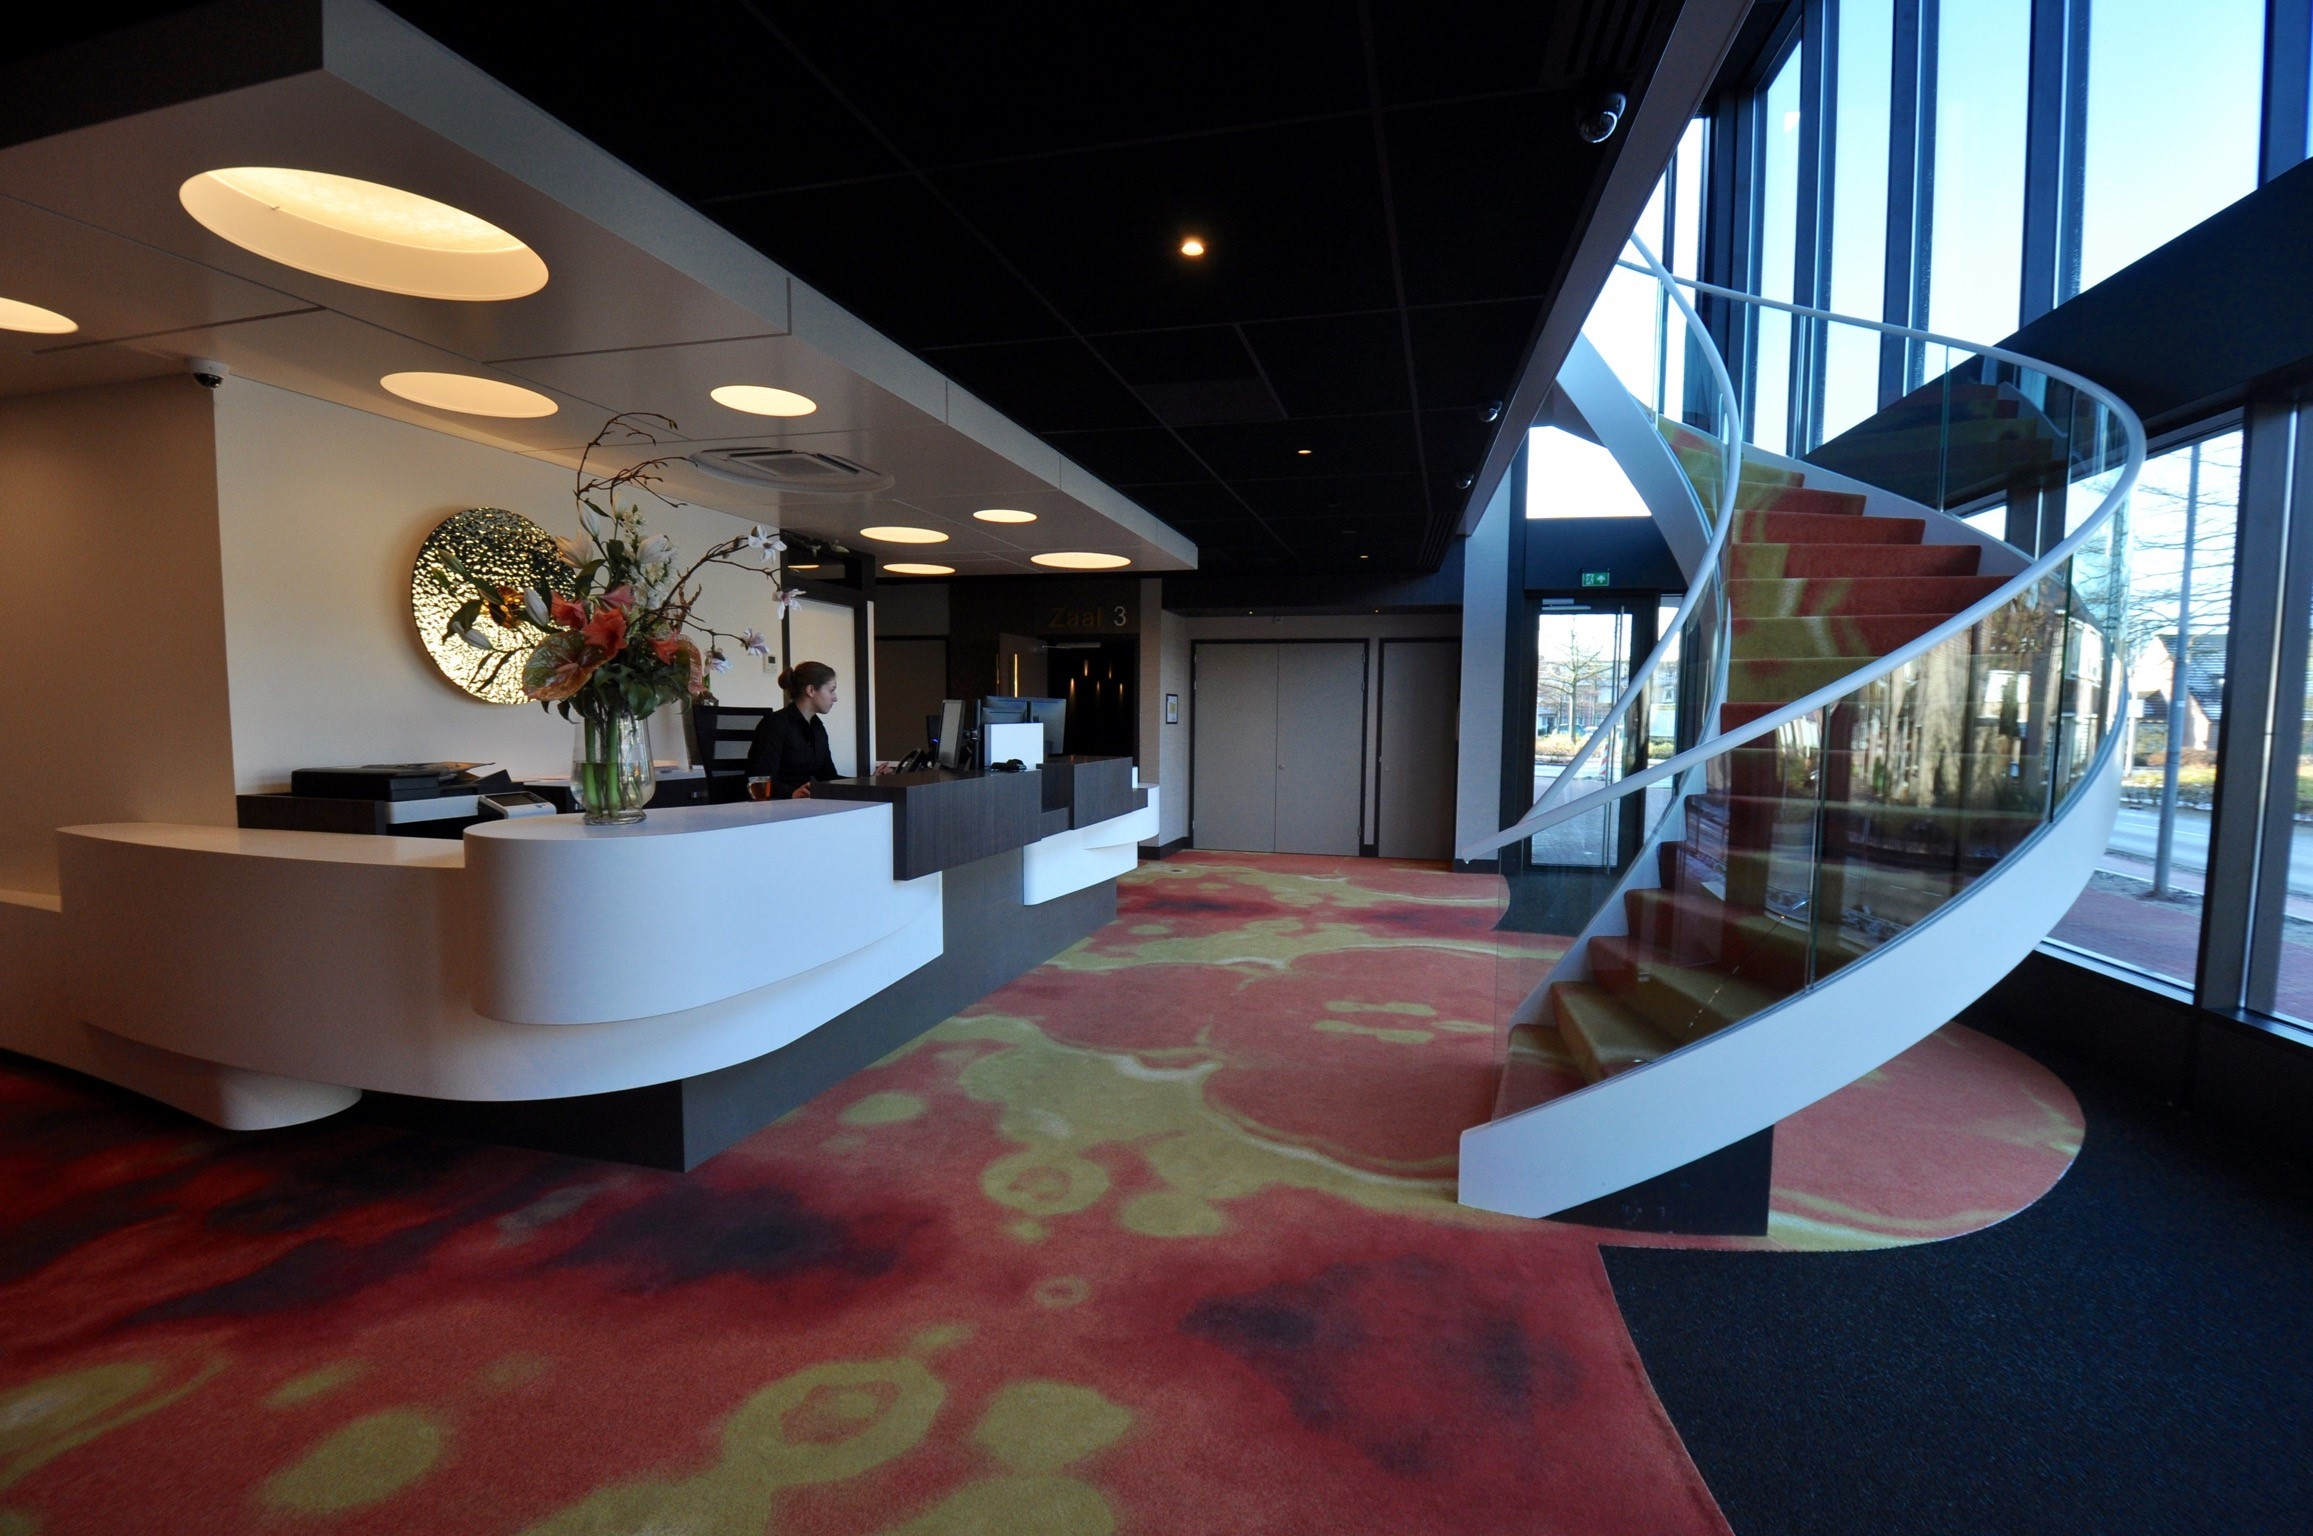 Bios Veldhoven Arc17 Cinema Gold Bobarchitectuur De Architect